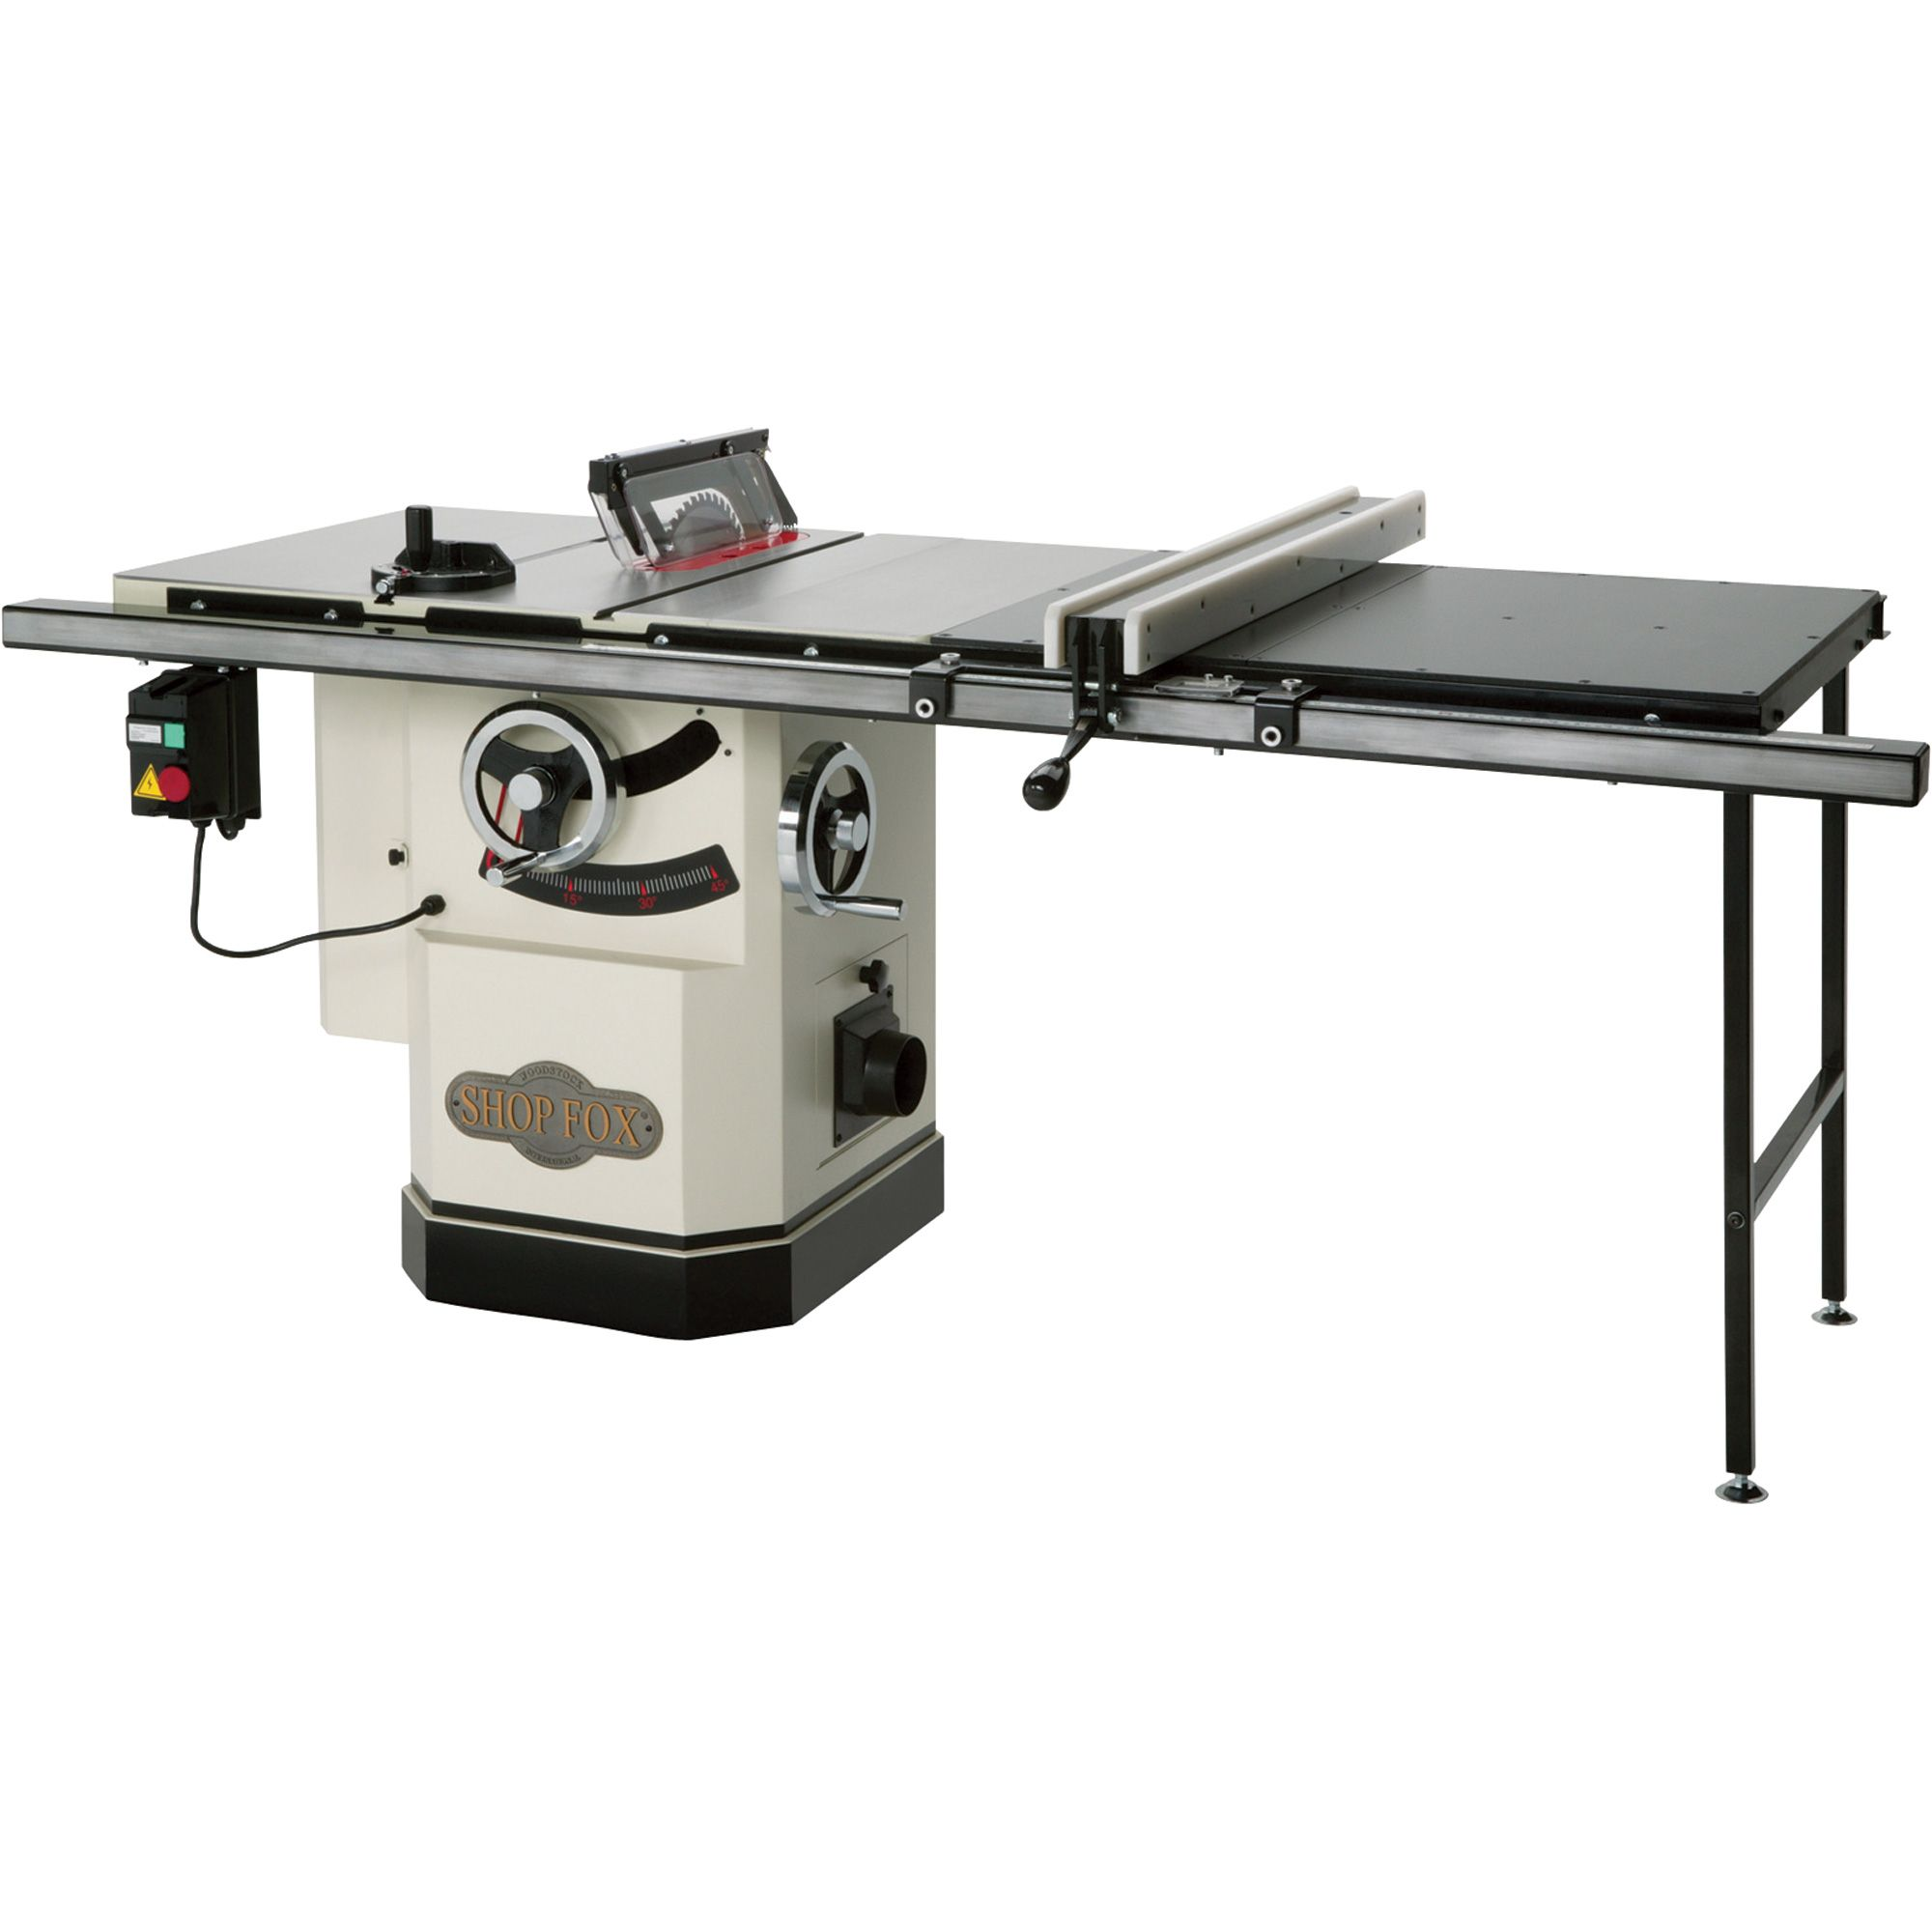 Shop Fox Table Saw with Riving Knife 10in., Model